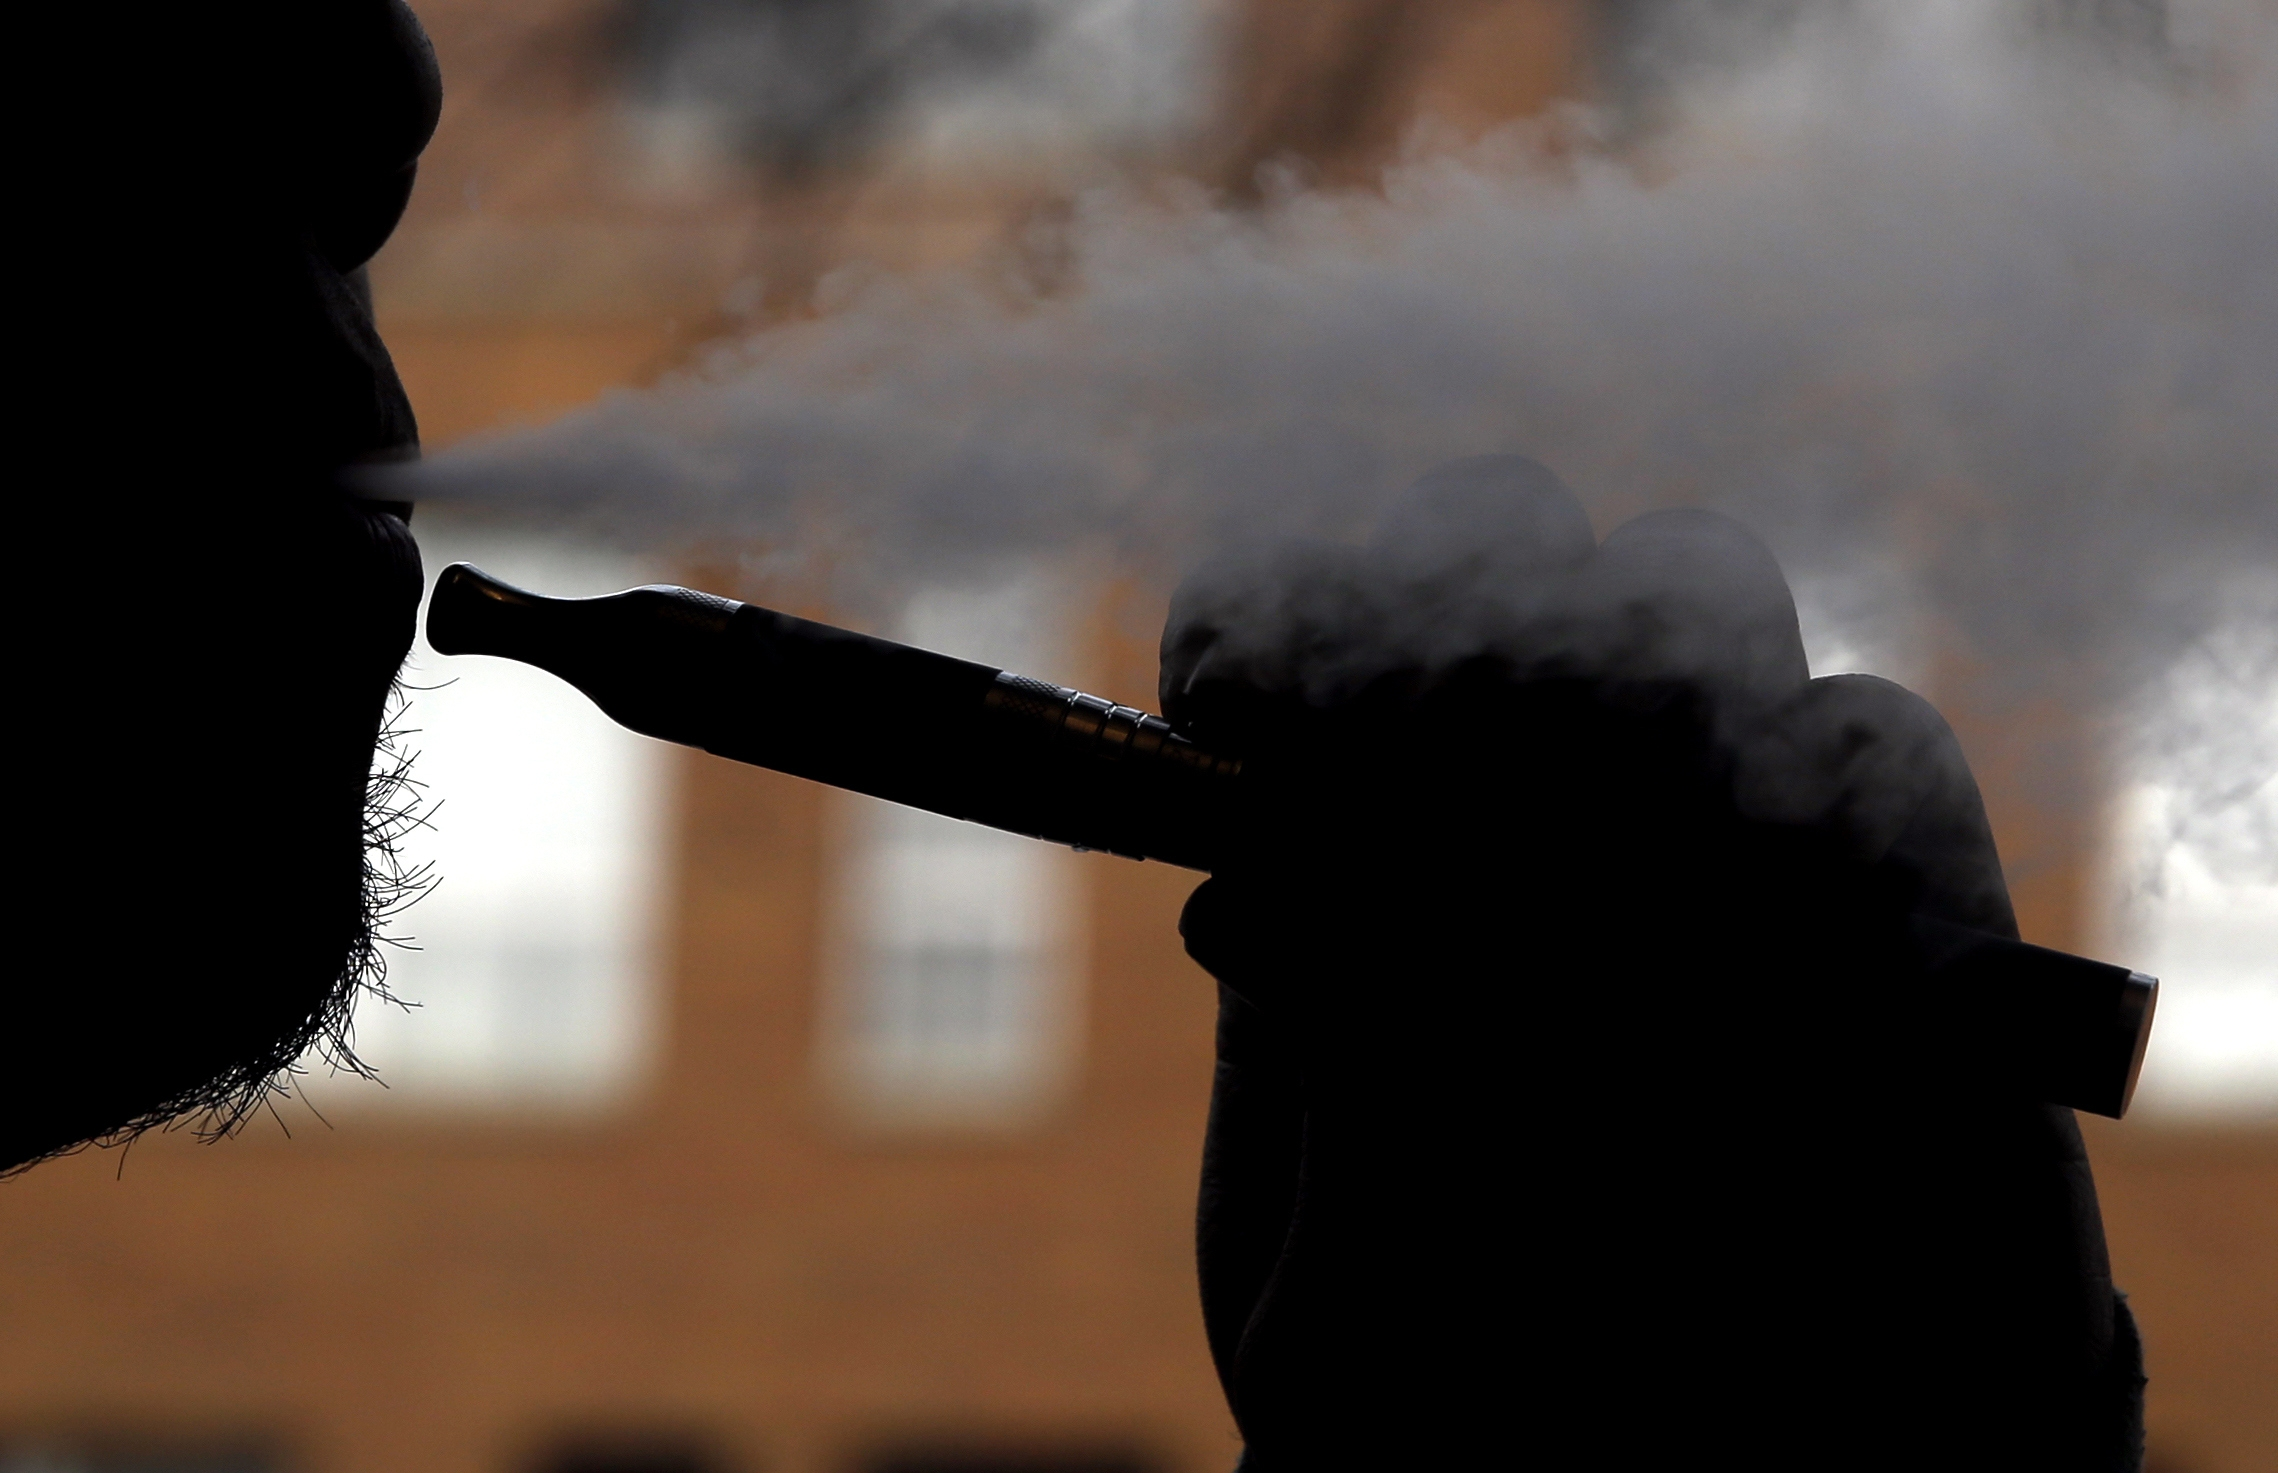 Daryl Cura demonstrates an e-cigarette at Vape store in Chicago, Wednesday. The federal government wants to ban sales of electronic cigarettes to minors and require approval for new products and health warning labels under regulations being proposed by the Food and Drug Administration. (Associated Press photo)